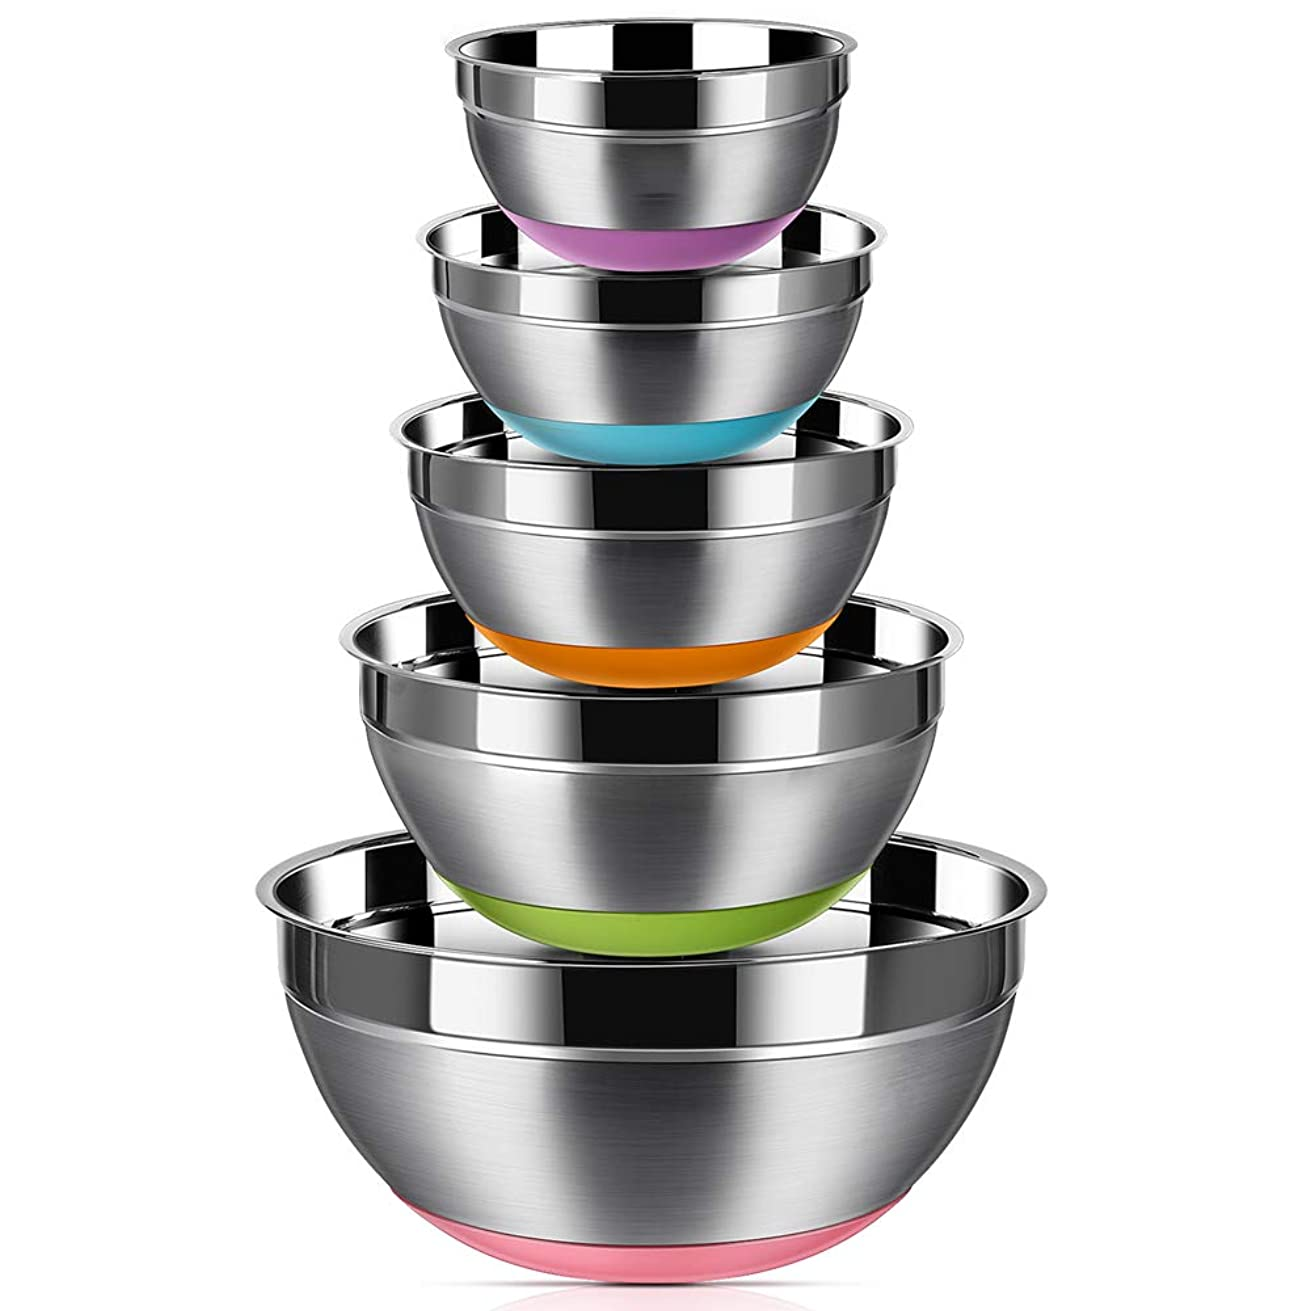 Stainless Steel Mixing Bowls (Set of 5), Non Slip Colorful Silicone Bottom Nesting Storage Bowls by Aammaxs-yyi, Polished Mirror Finish For Healthy Meal Mixing and Prepping 1.5-2 - 2.5-3.5 - 7QT